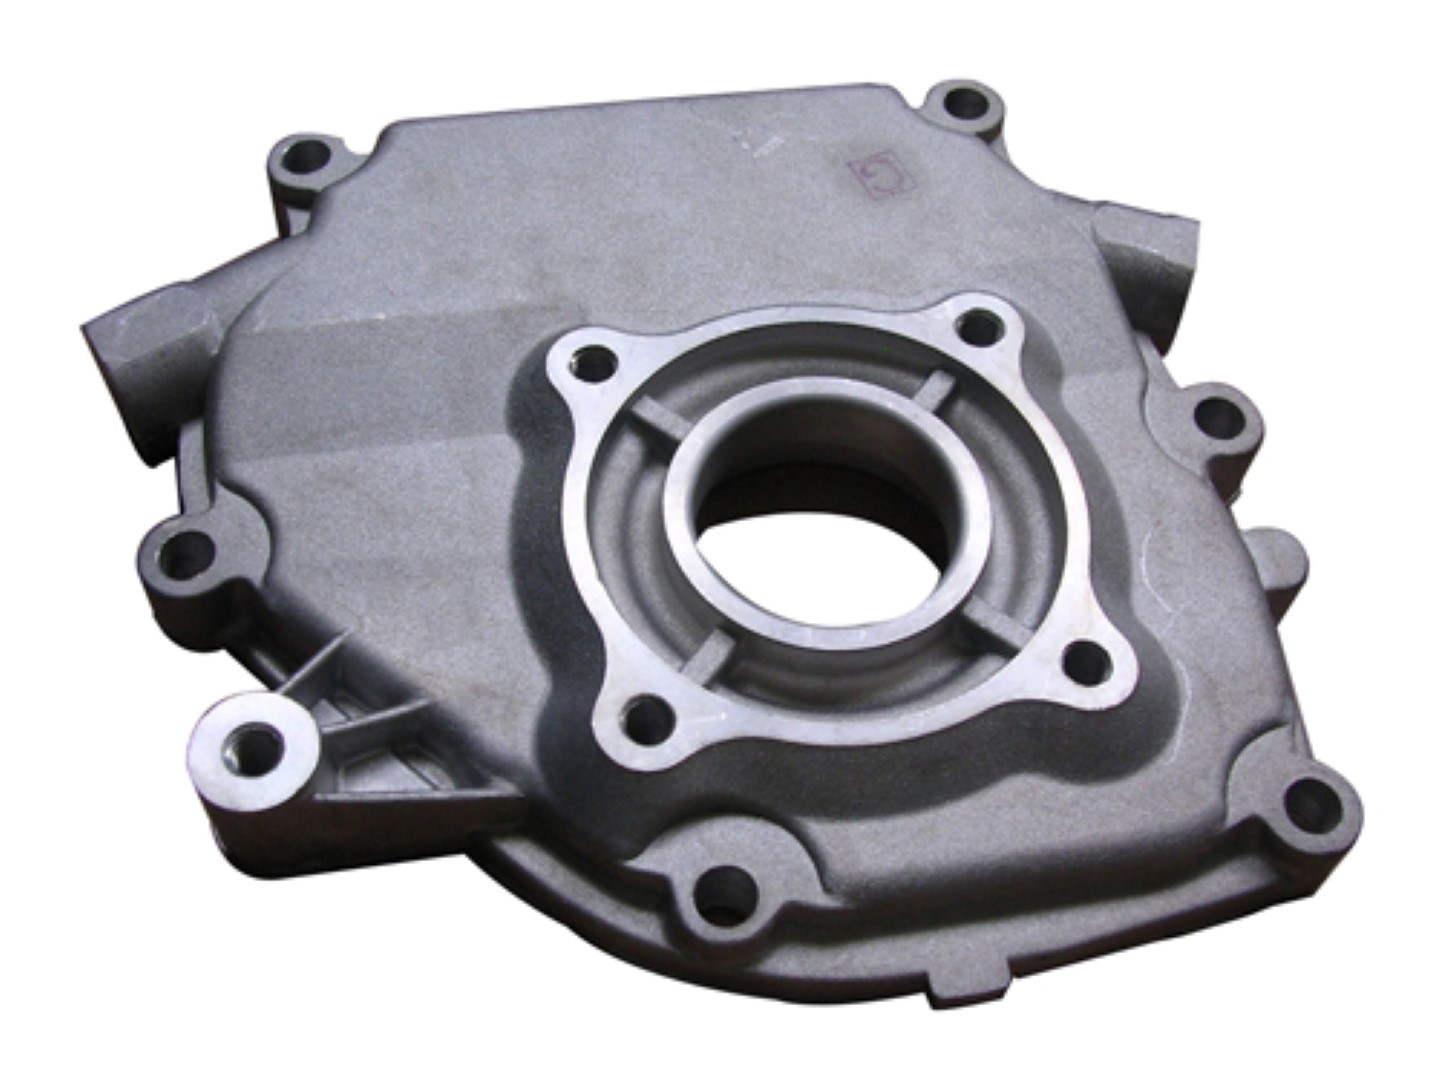 Honda GX240 Crank Case Cover